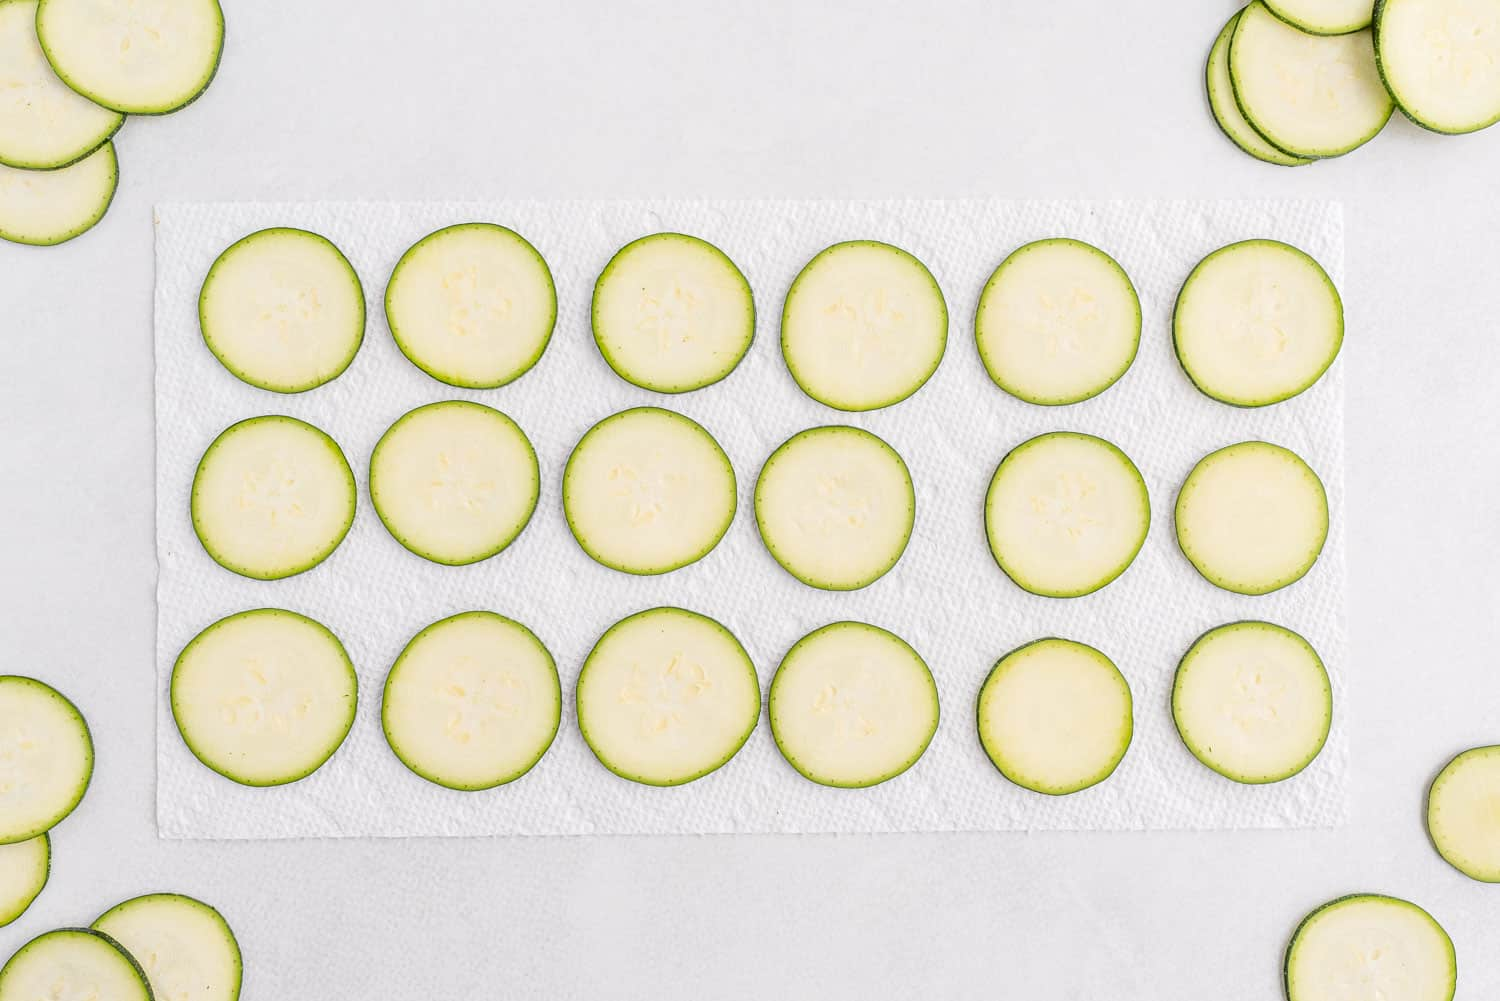 Zucchini slices laid out on a paper towel.